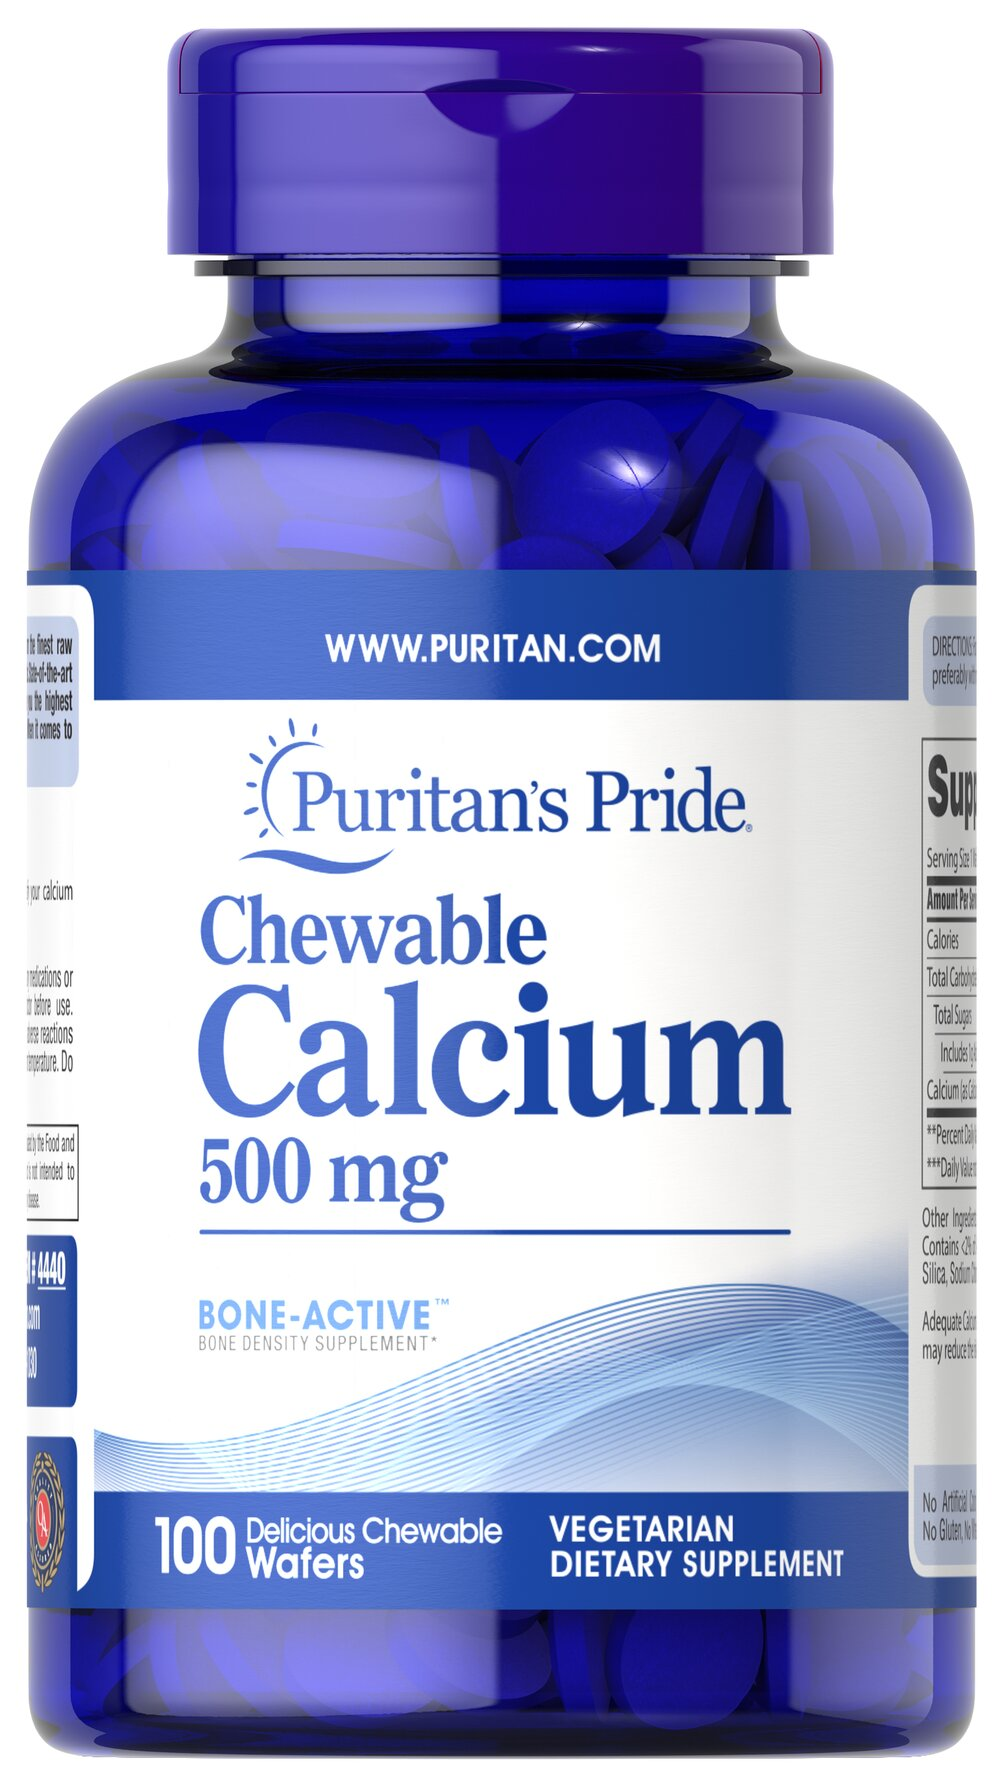 Chewable Calcium 500 mg <p>Supports Bone Health**</p><p>Many factors contribute to the development of osteoporosis including sex, race, age, and hormonal status. It's important to remember that everyone loses bone mass with age. Regular exercise, a healthy diet and adequate Calcium intake help maintain good bone health and may reduce the high risk of osteoporosis later in life.</p> 100 Chewables 500 mg $11.29